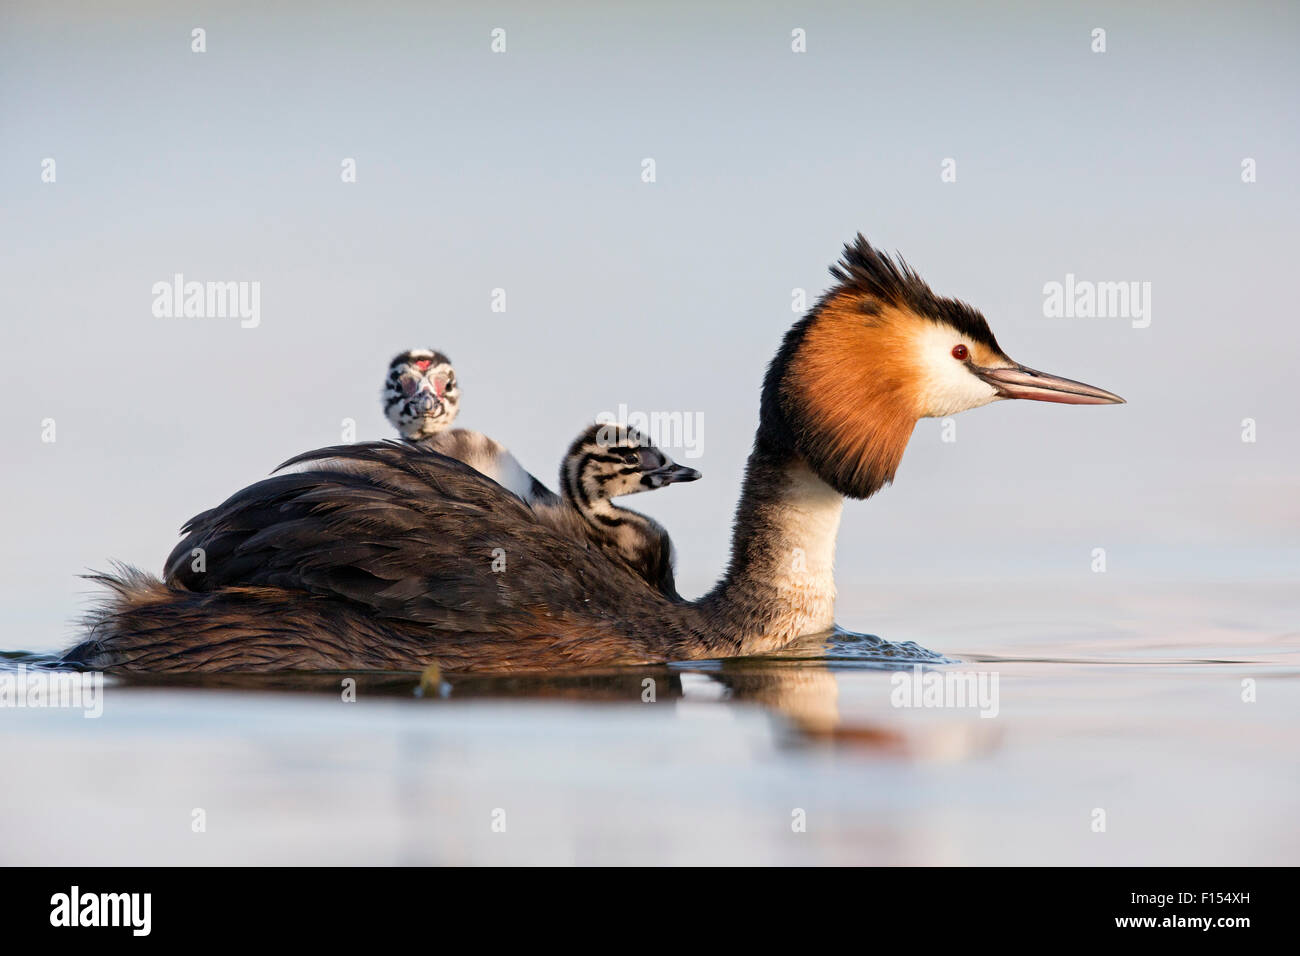 Great crested grebe (Podiceps cristatus) close-up of an adult with two young chicks. The Netherlands. June 2014 - Stock Image